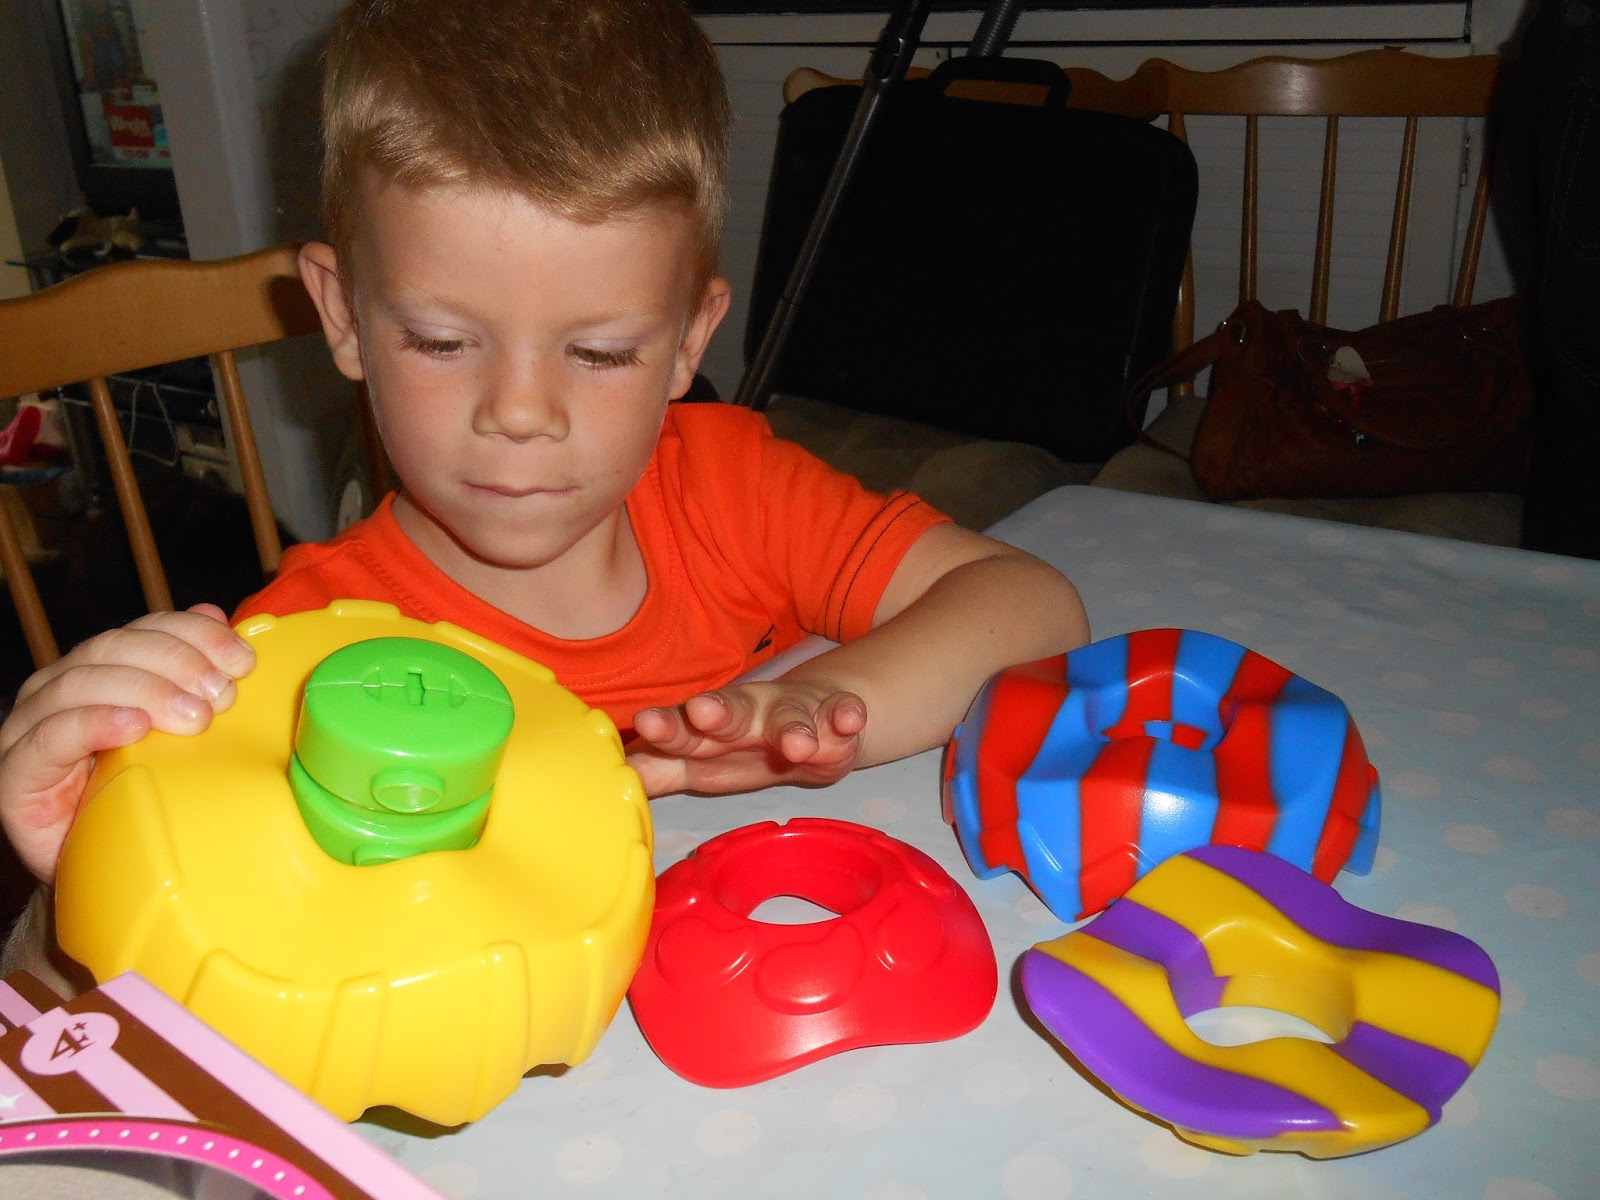 Madhouse Family Reviews Little Tikes Connect A Ball review